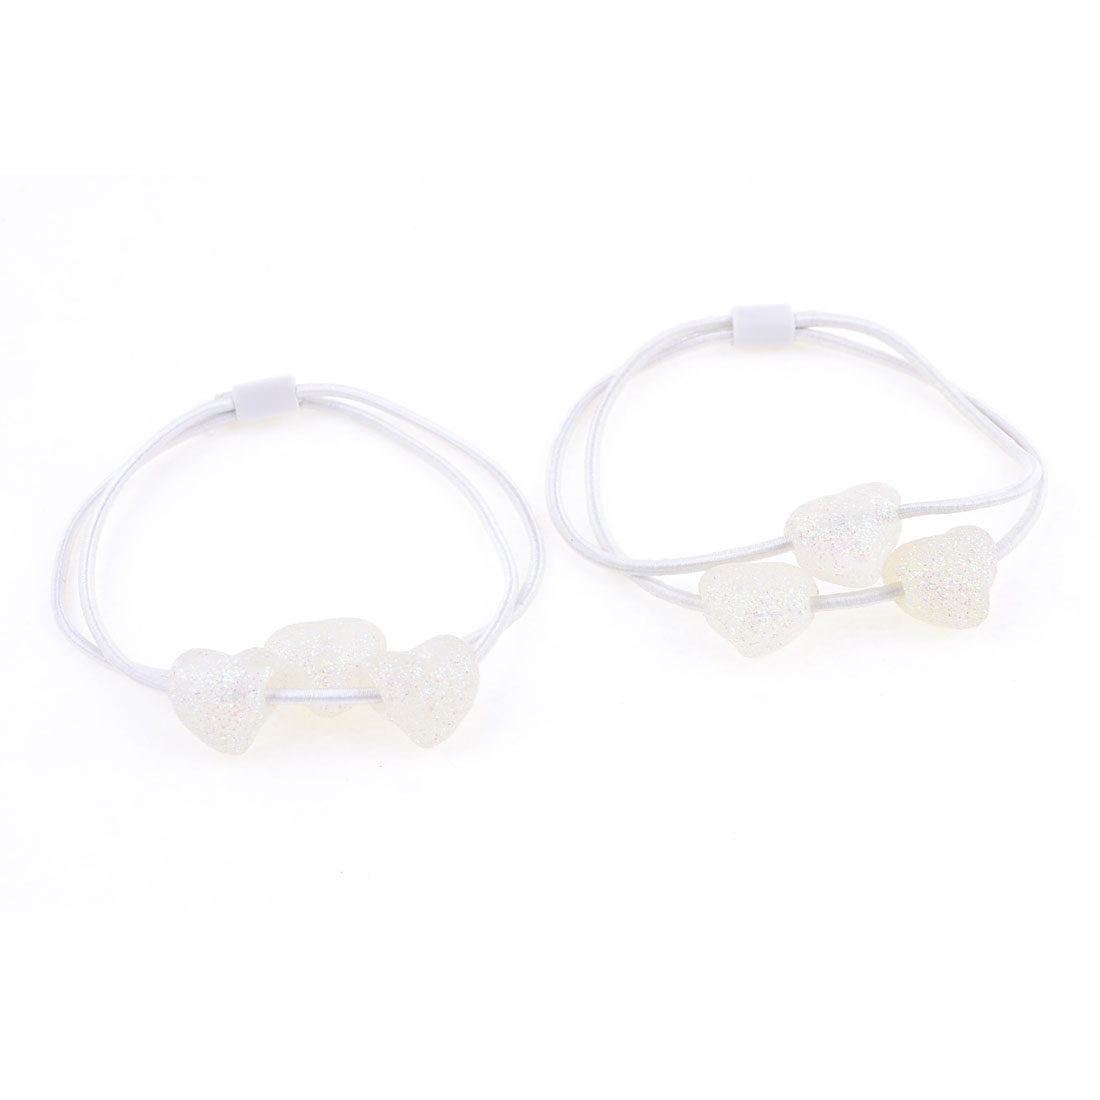 White Glittery Heart Bead Decorated Scrunchy Hair Tie Ponytail Holder Pair